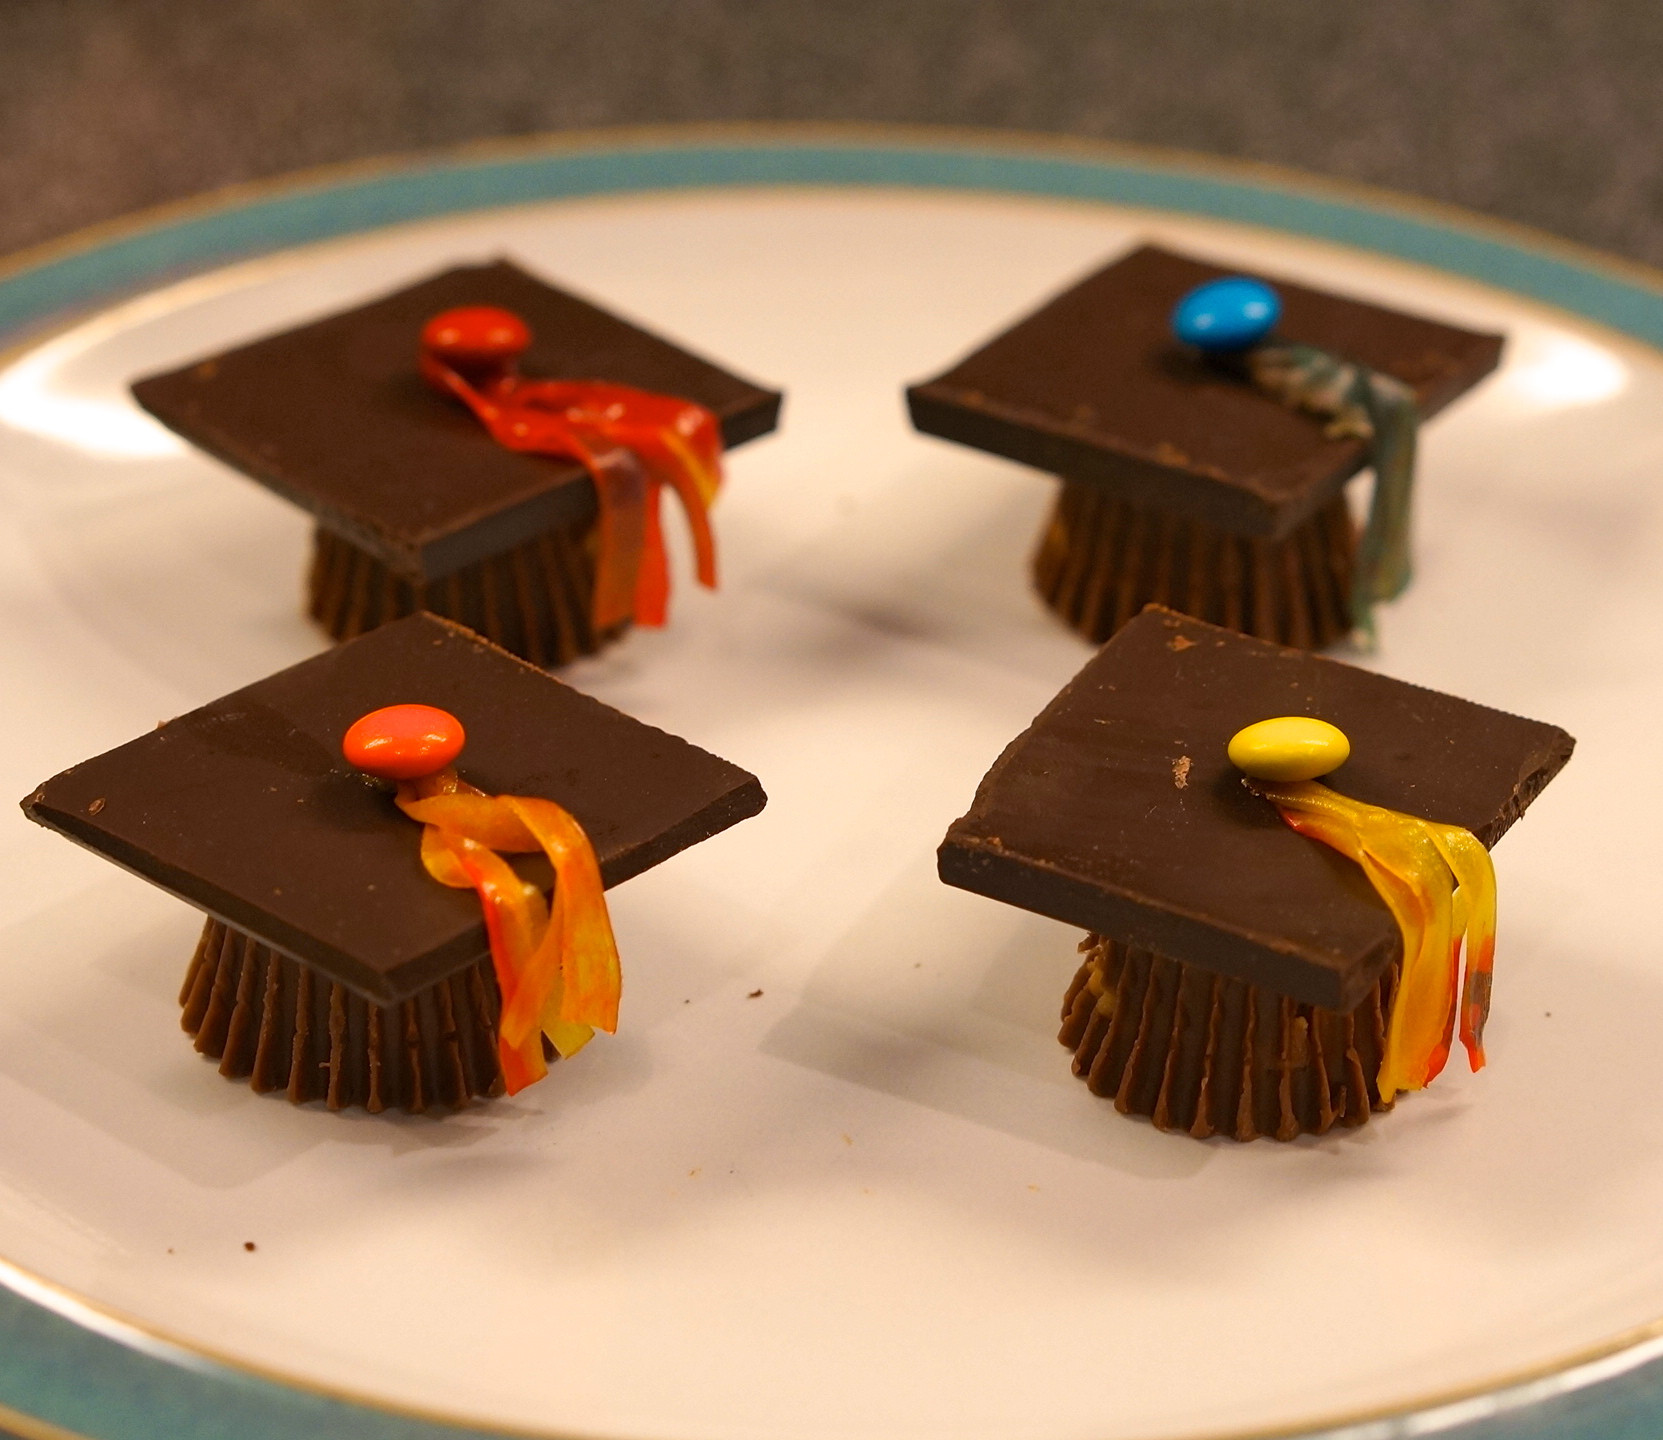 Graduation Cap Desserts  Adorable Chocolate Graduation Cap Dessert